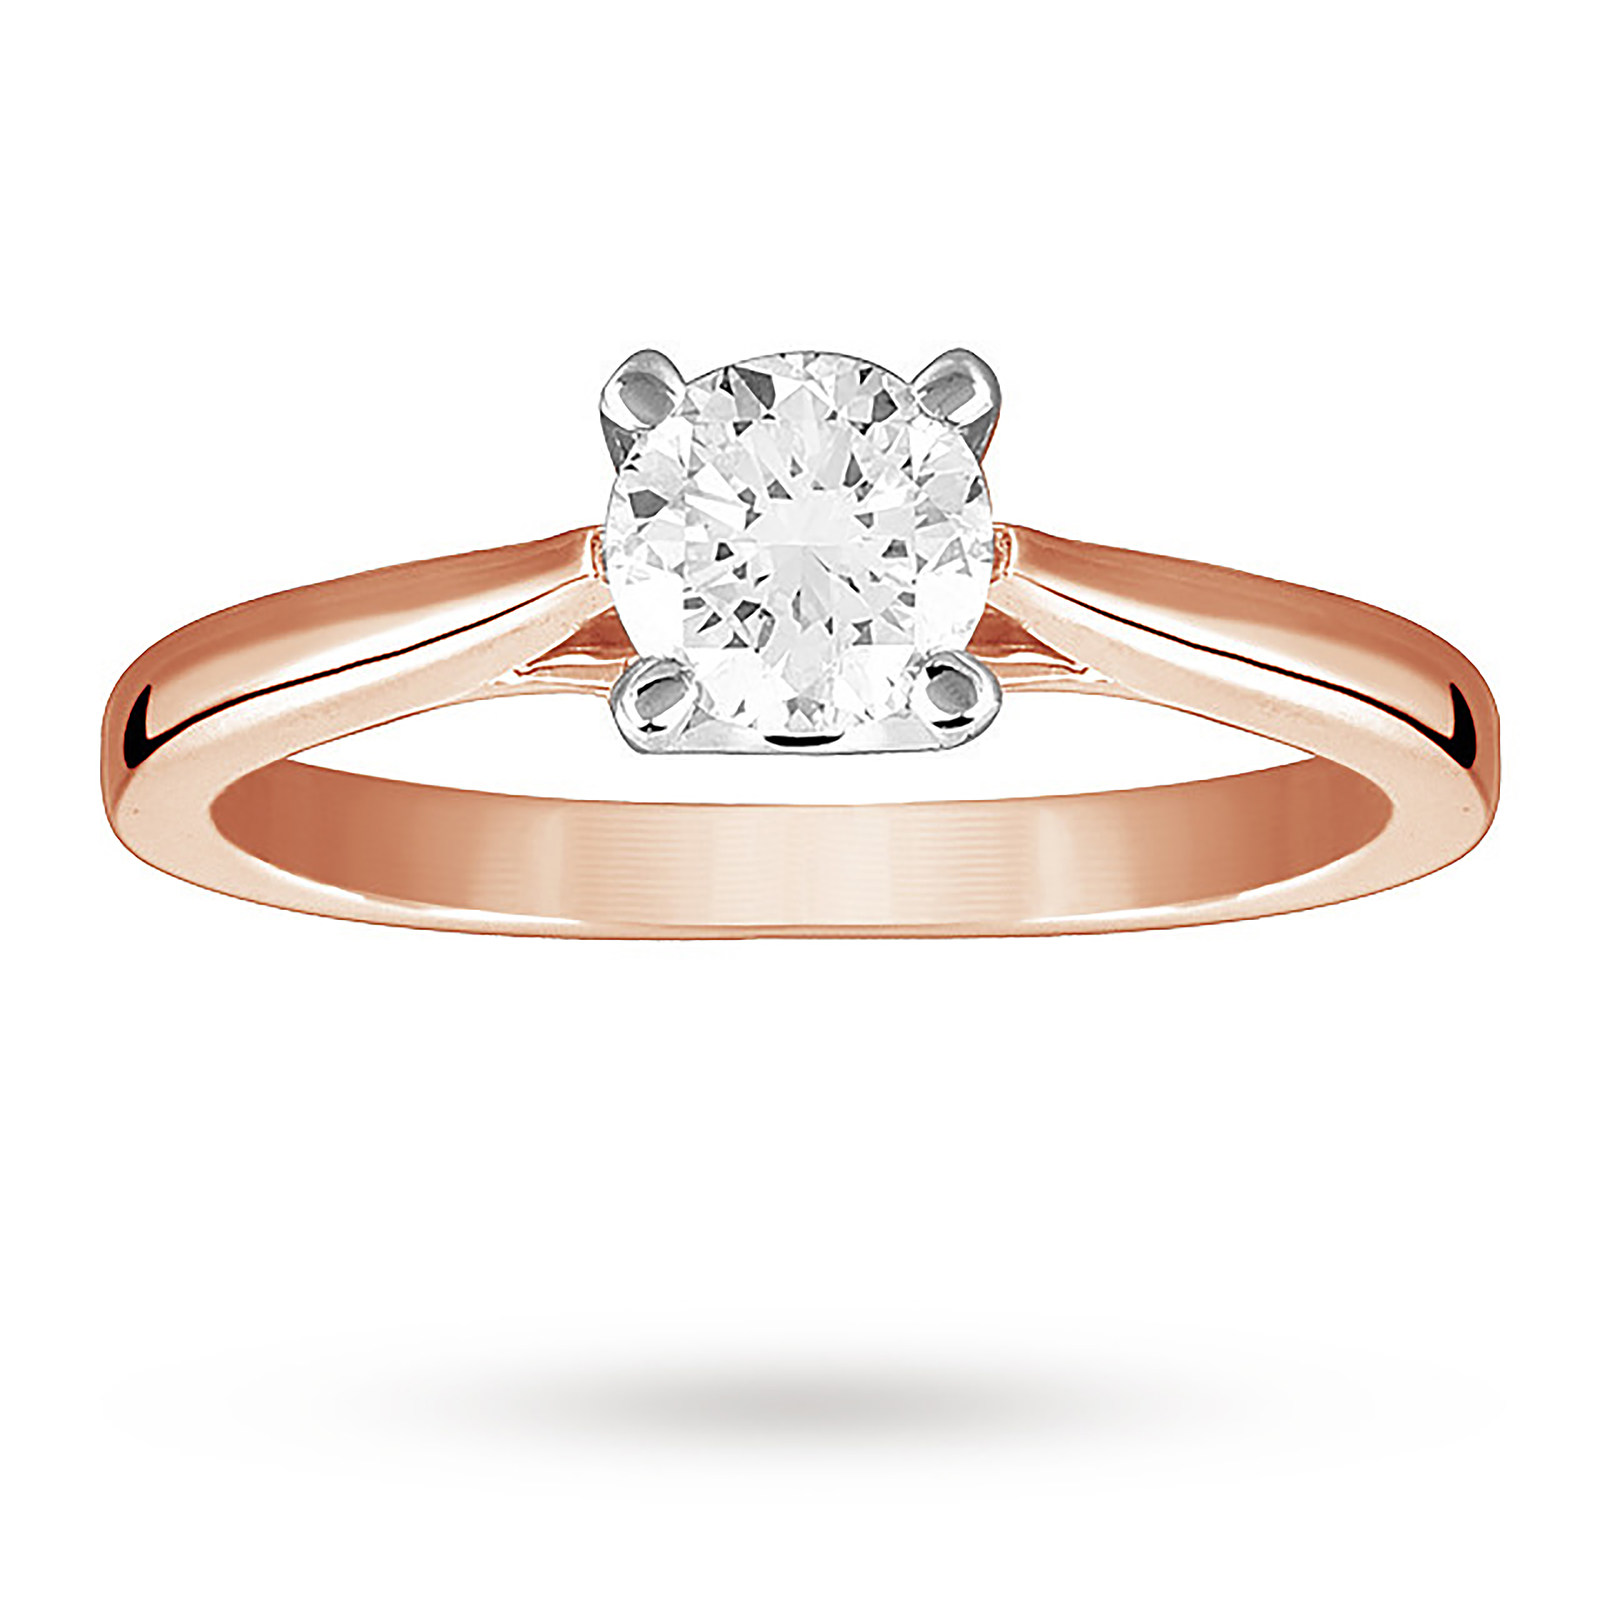 Solitaire Brilliant Cut 0.70 Carat Diamond Ring Set In 18 Carat Rose Gold